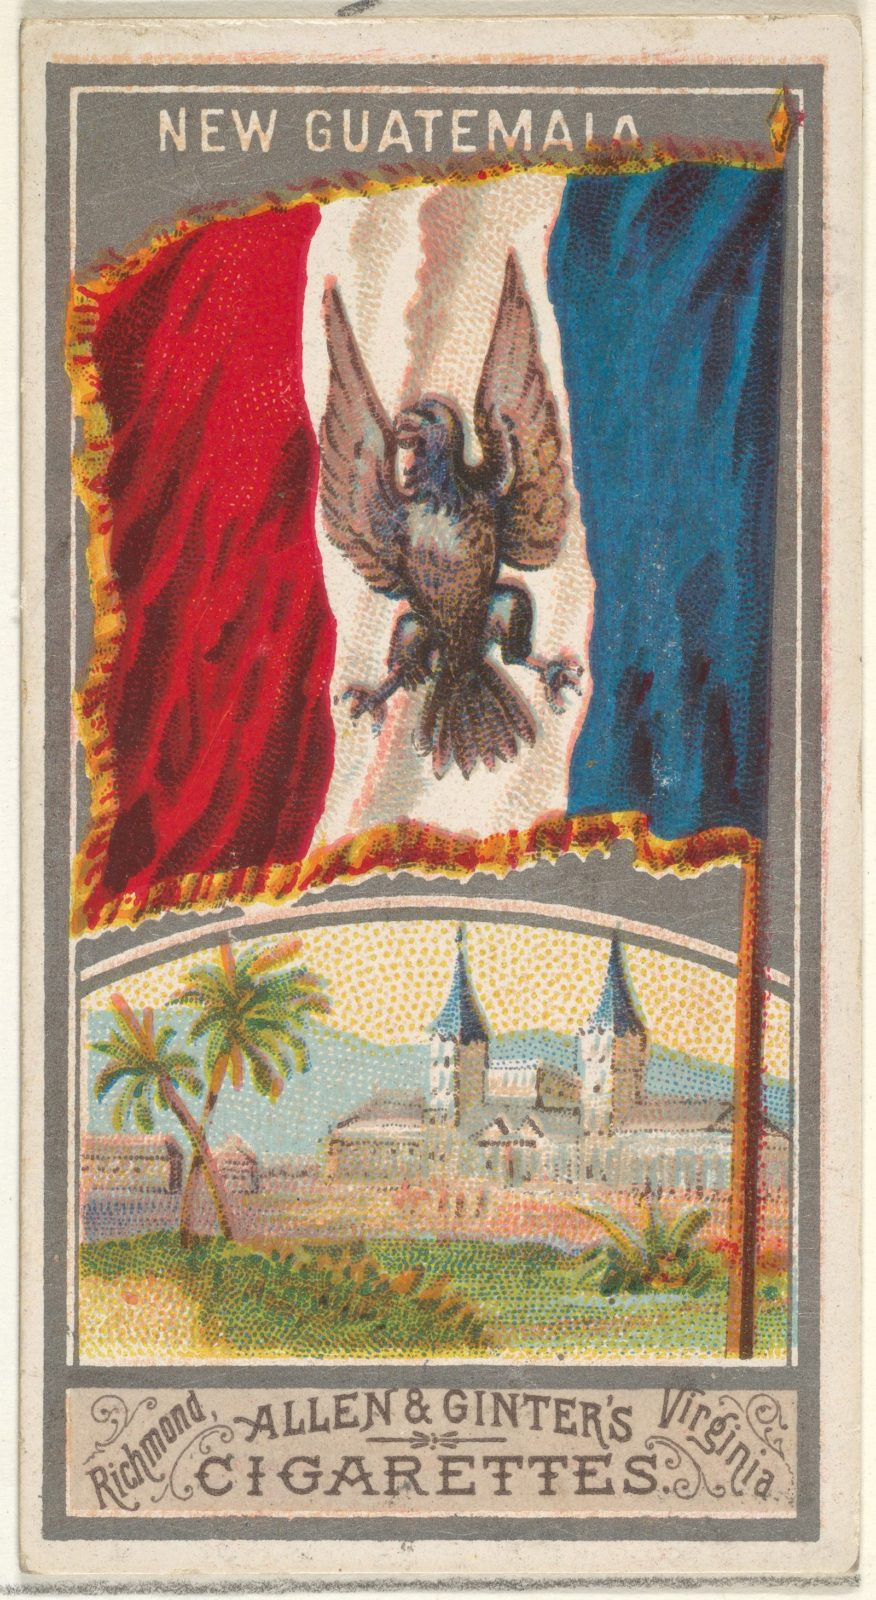 New Guatemala, from the City Flags series (N6) for Allen & Ginter Cigarettes Brands